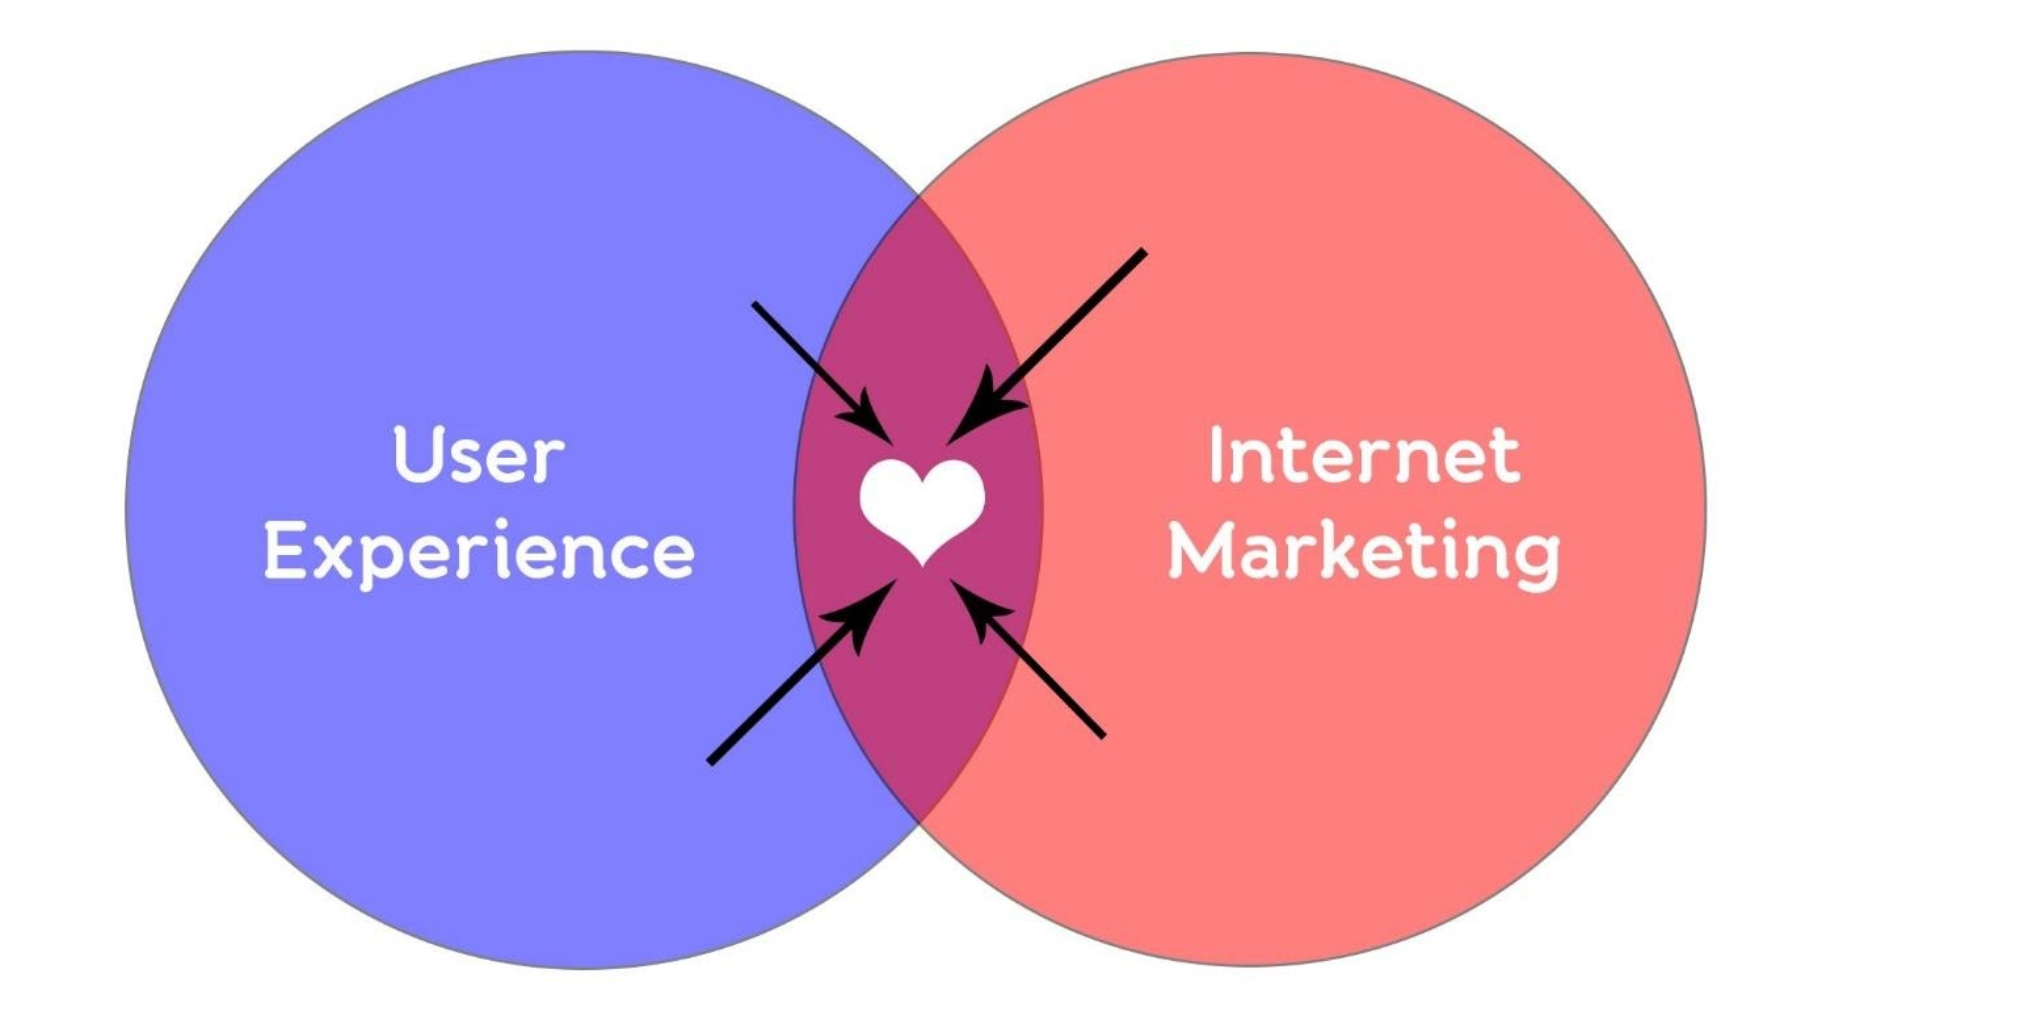 UX and Internet Marketing